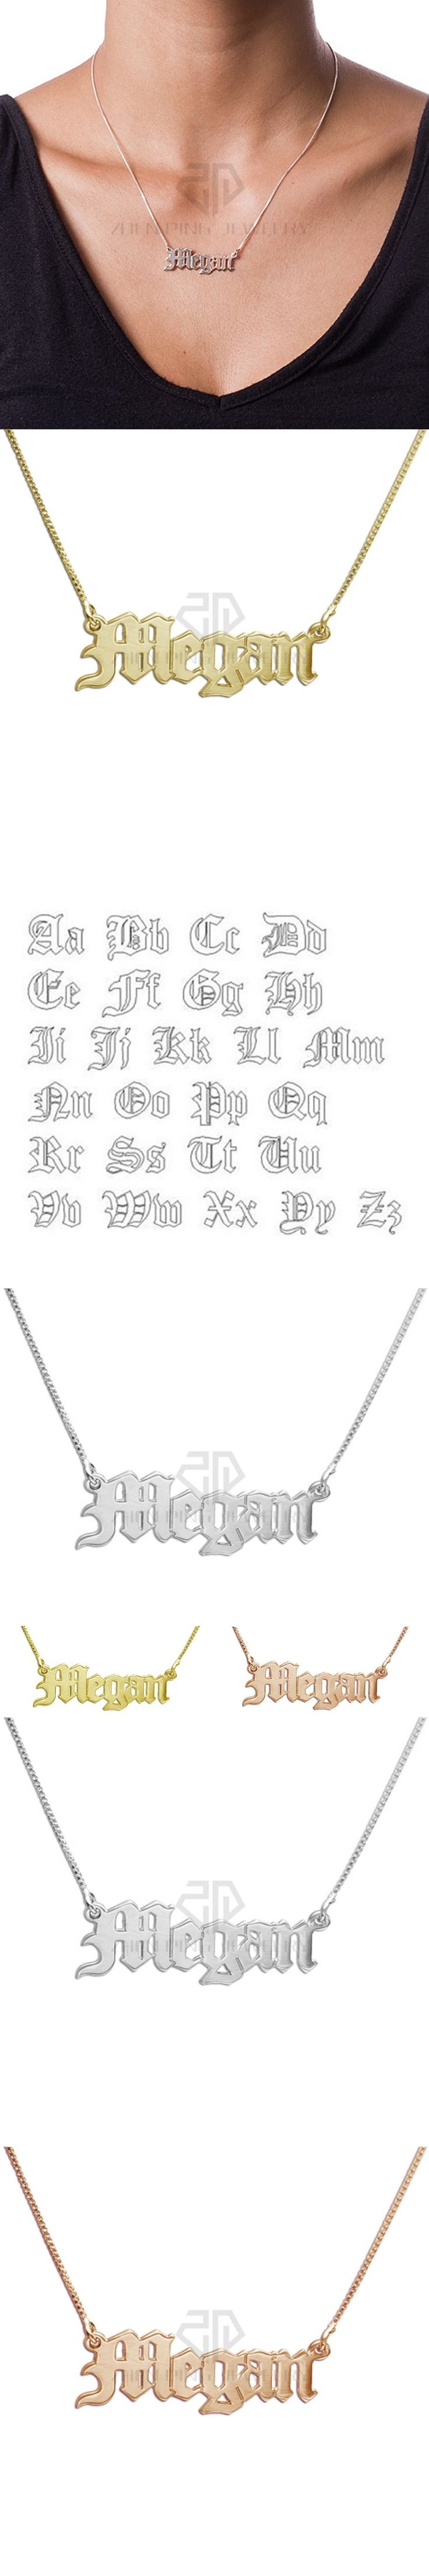 Personalized Nameplate Pendant Old English style Name Jewelry